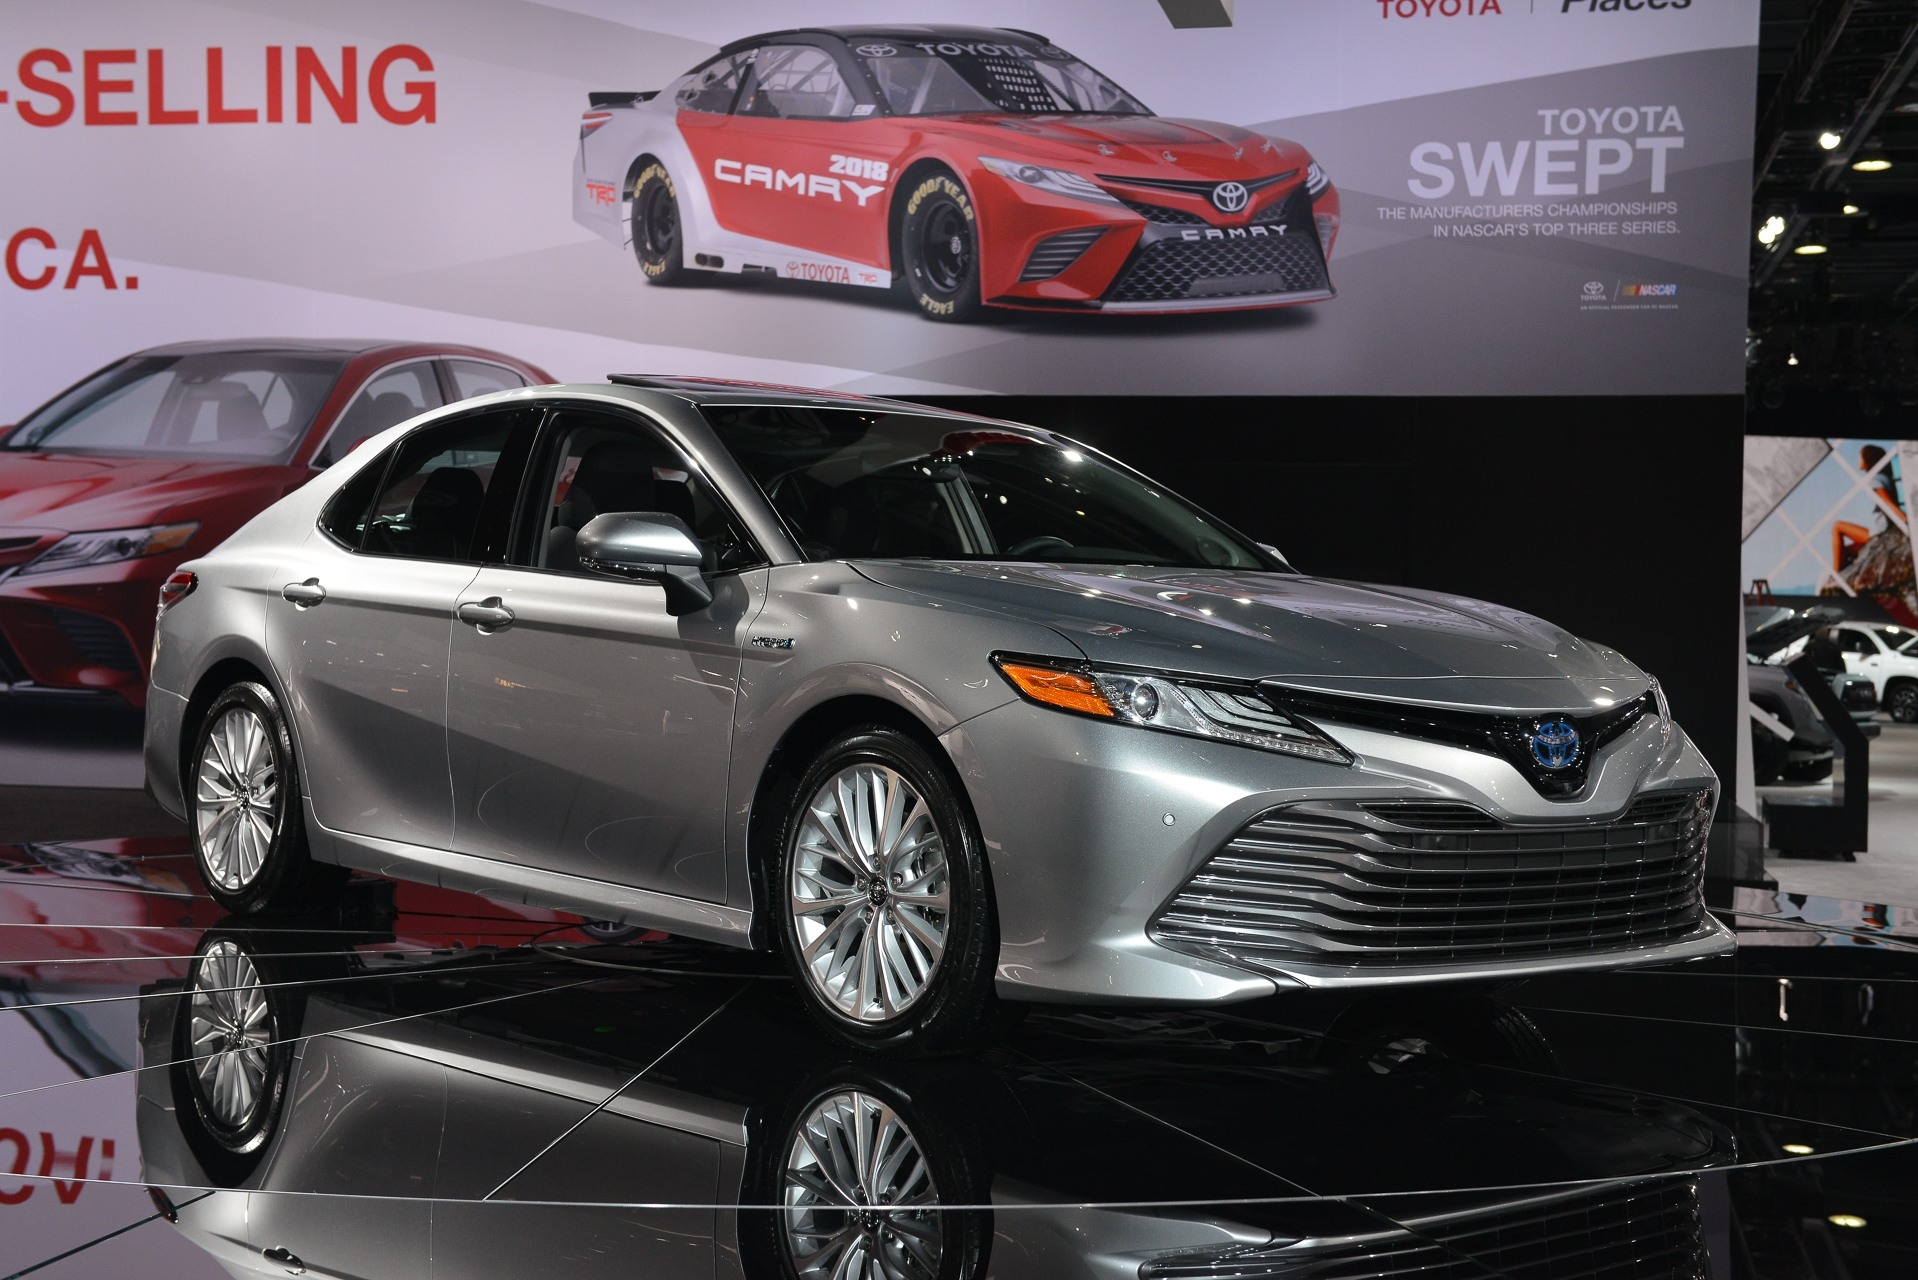 Tnl Unveils 8th Generation Toyota Camry In Nigeria